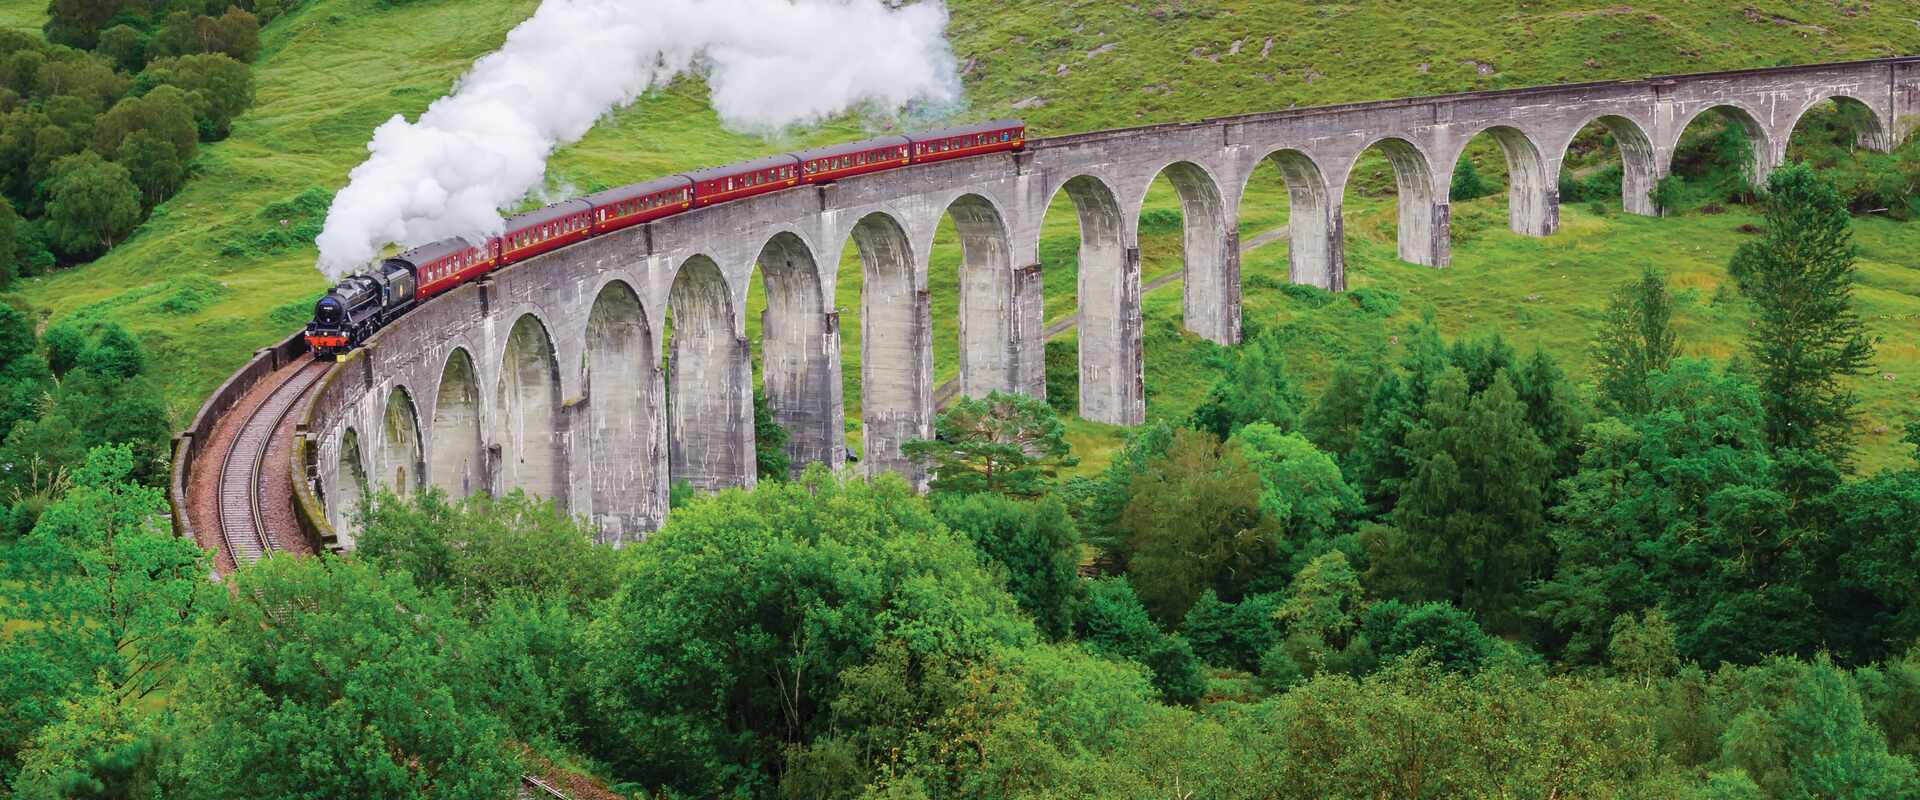 View of Jacobite Steam Train on Glenfinnan Viaduct in the Highlands, Scotland